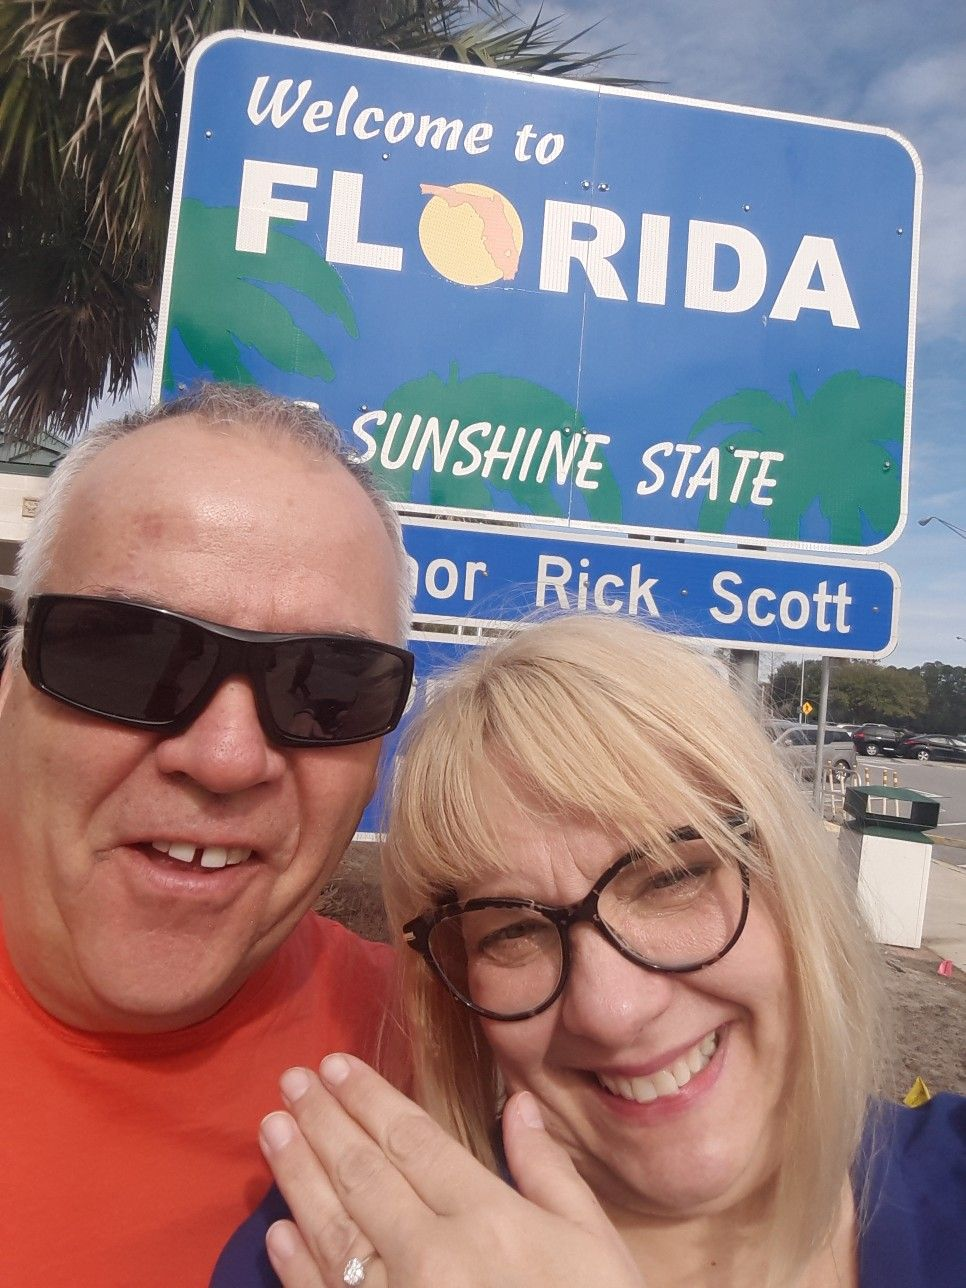 Pin by Miss Vanille on Favorite places Florida sunshine